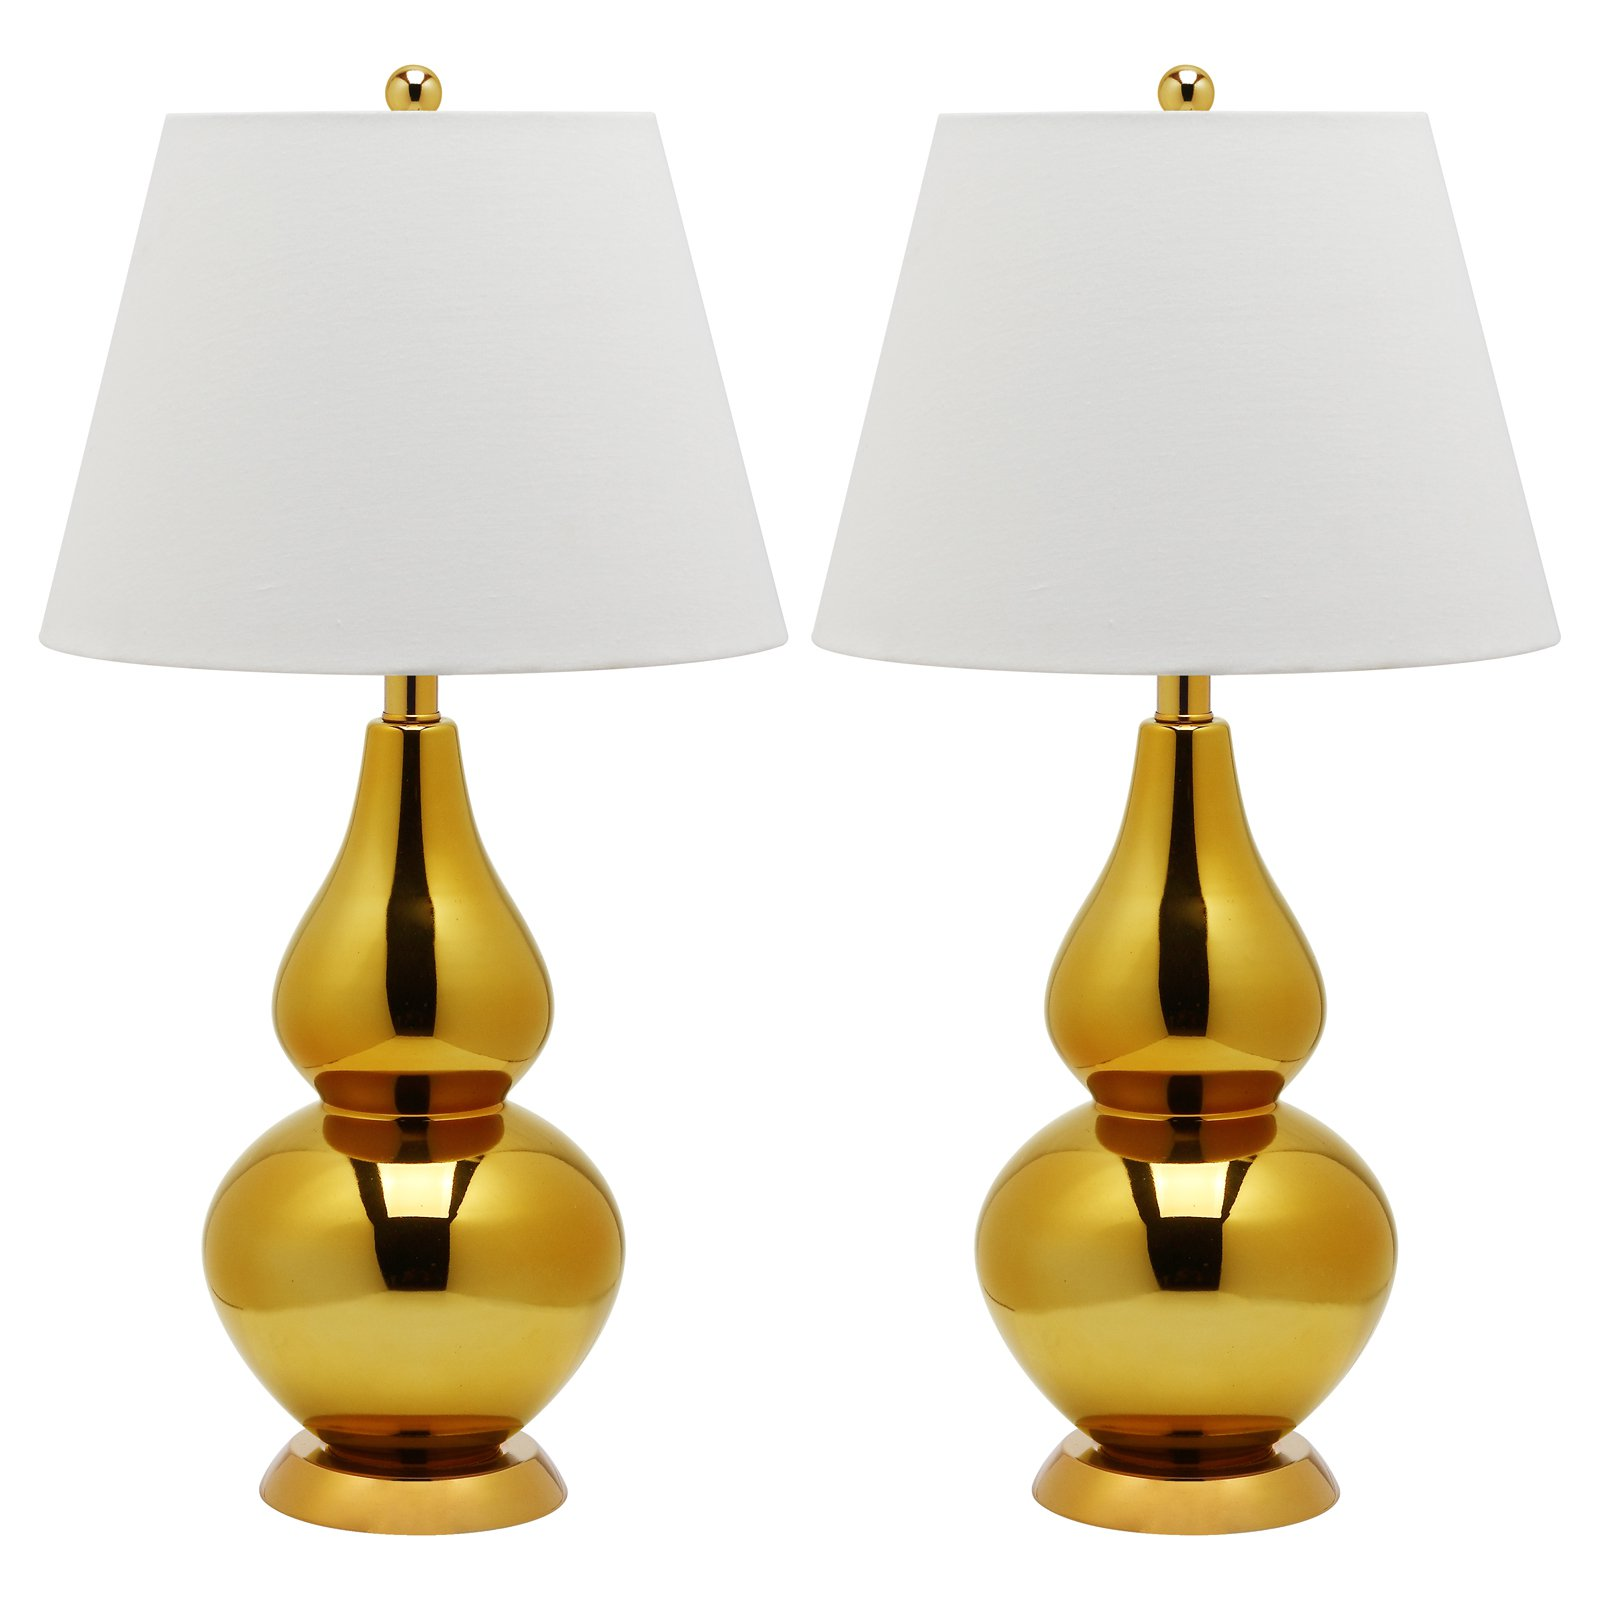 Safavieh Cybil Double-Gourd Lamp with CFL Bulb, Set of 2